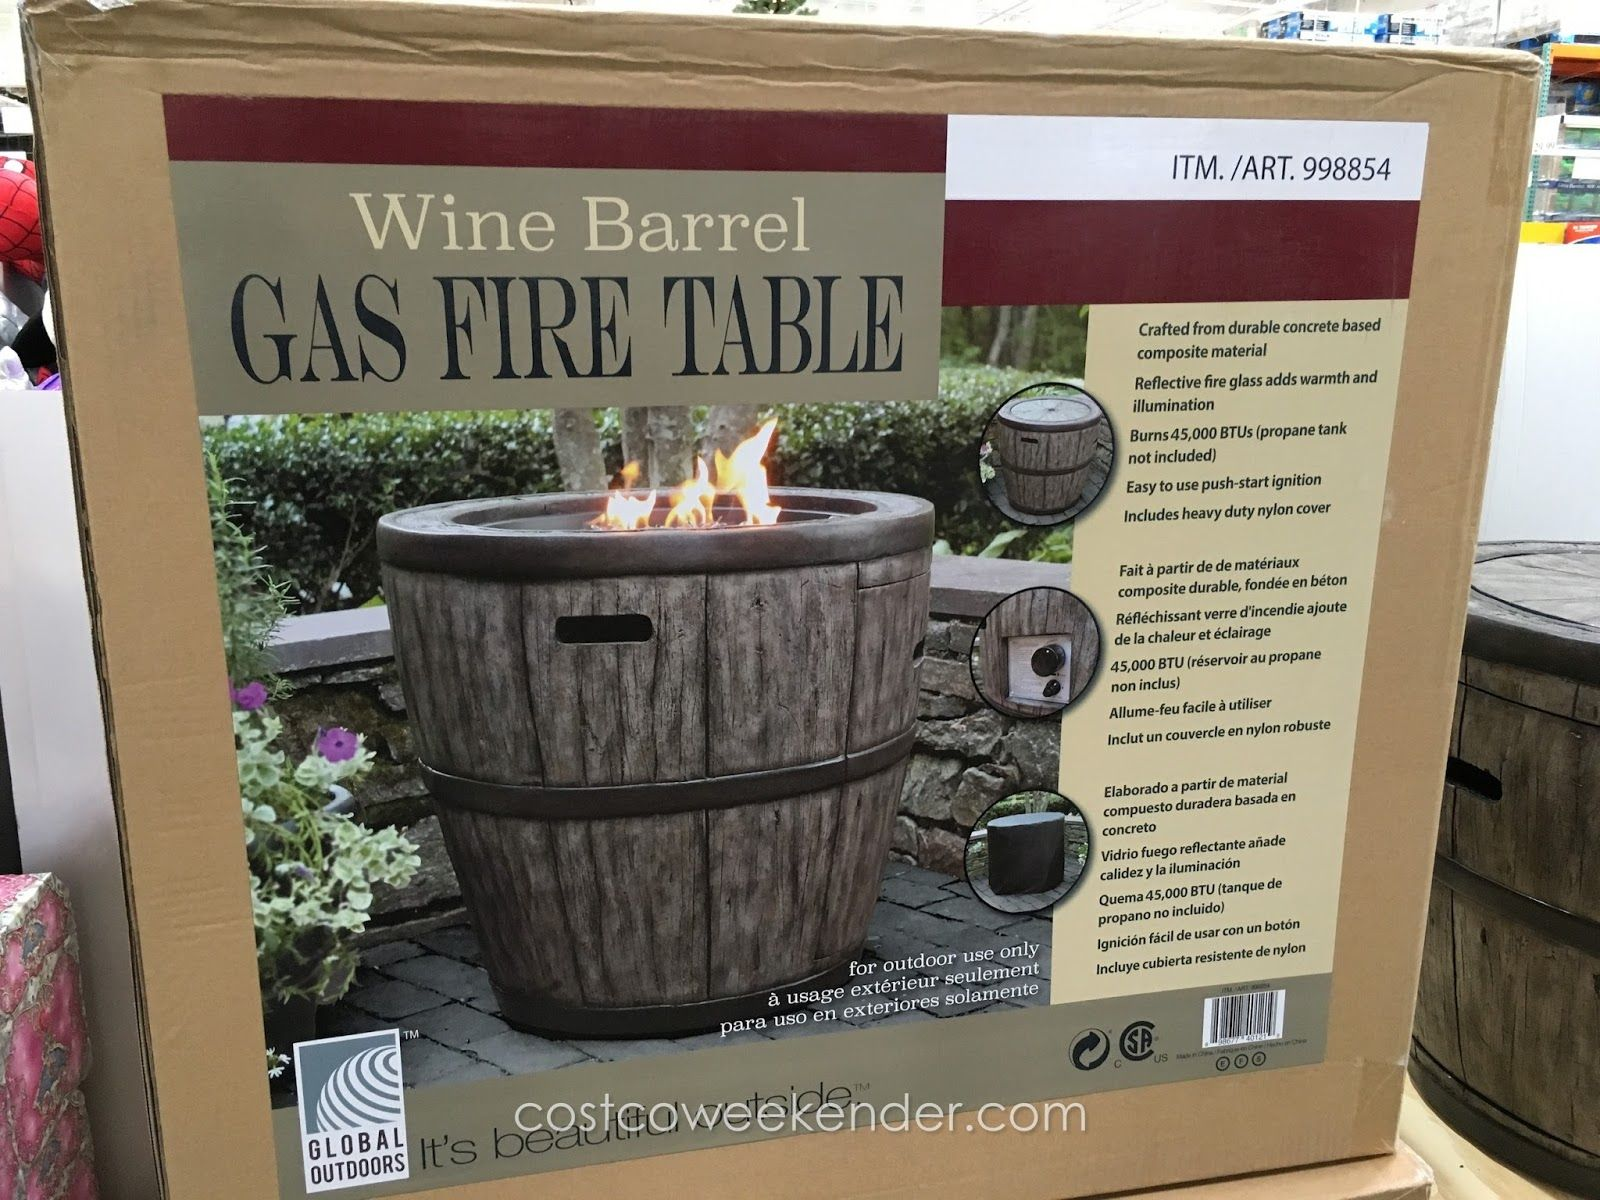 global outdoors wine barrel gas fire table at costco outdoor